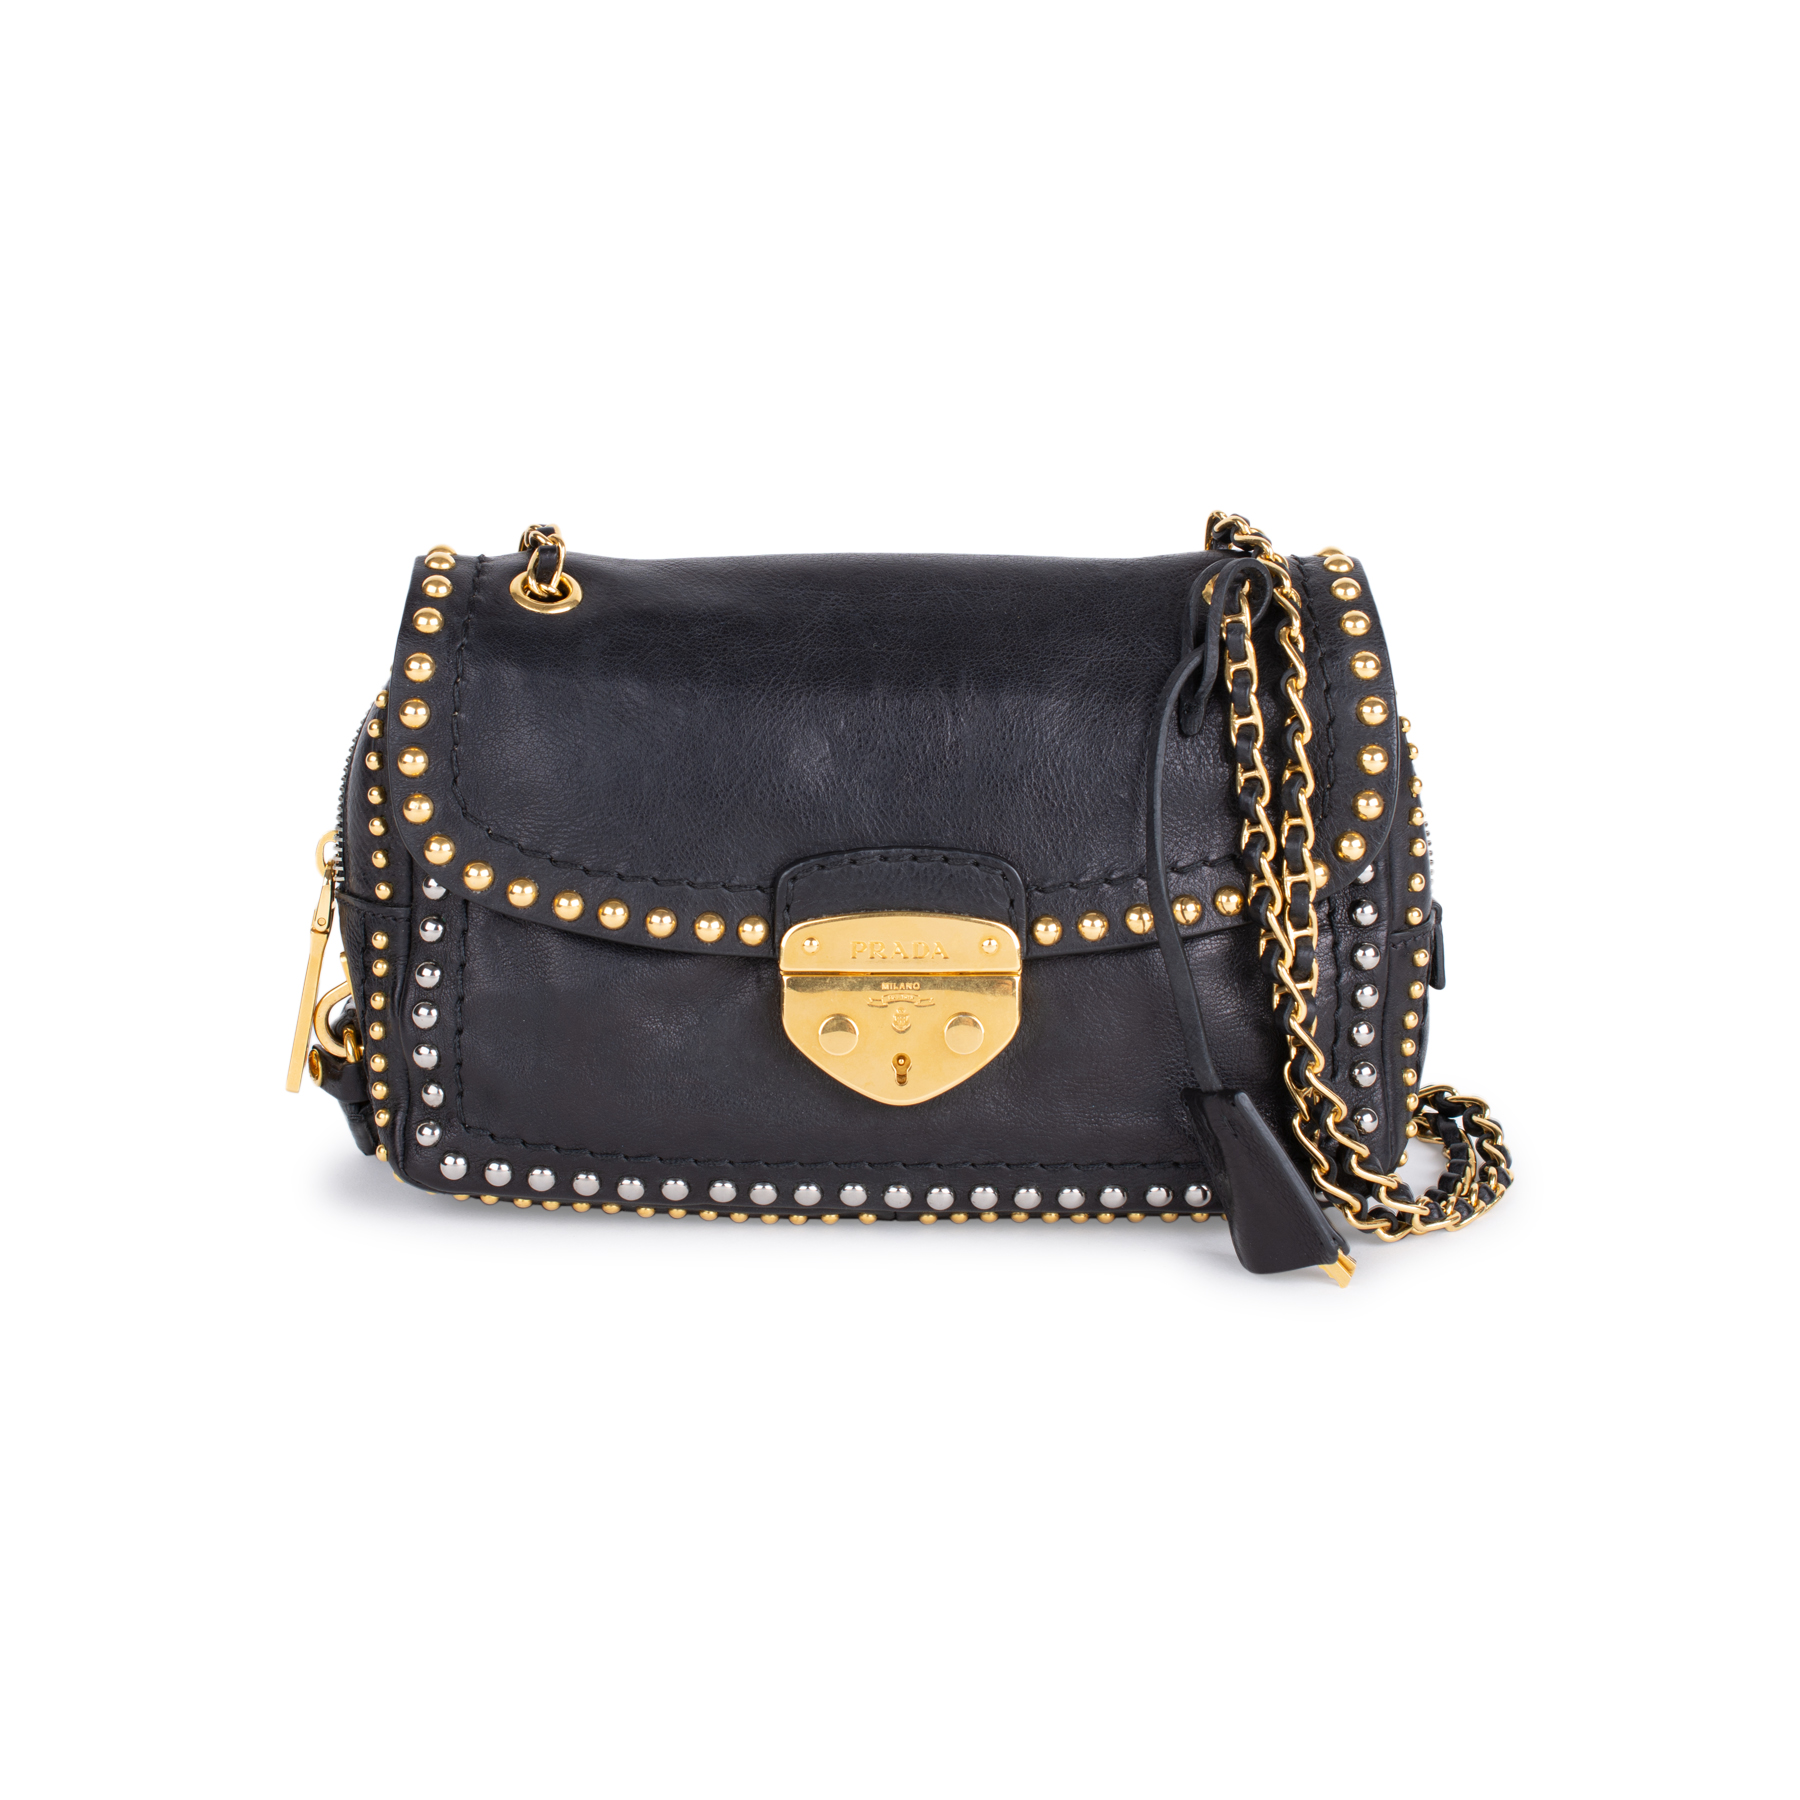 5ef0fd3f1c5 Authentic Second Hand Prada Studded Push-lock Crossbody Bag (PSS-333-00021)  - THE FIFTH COLLECTION